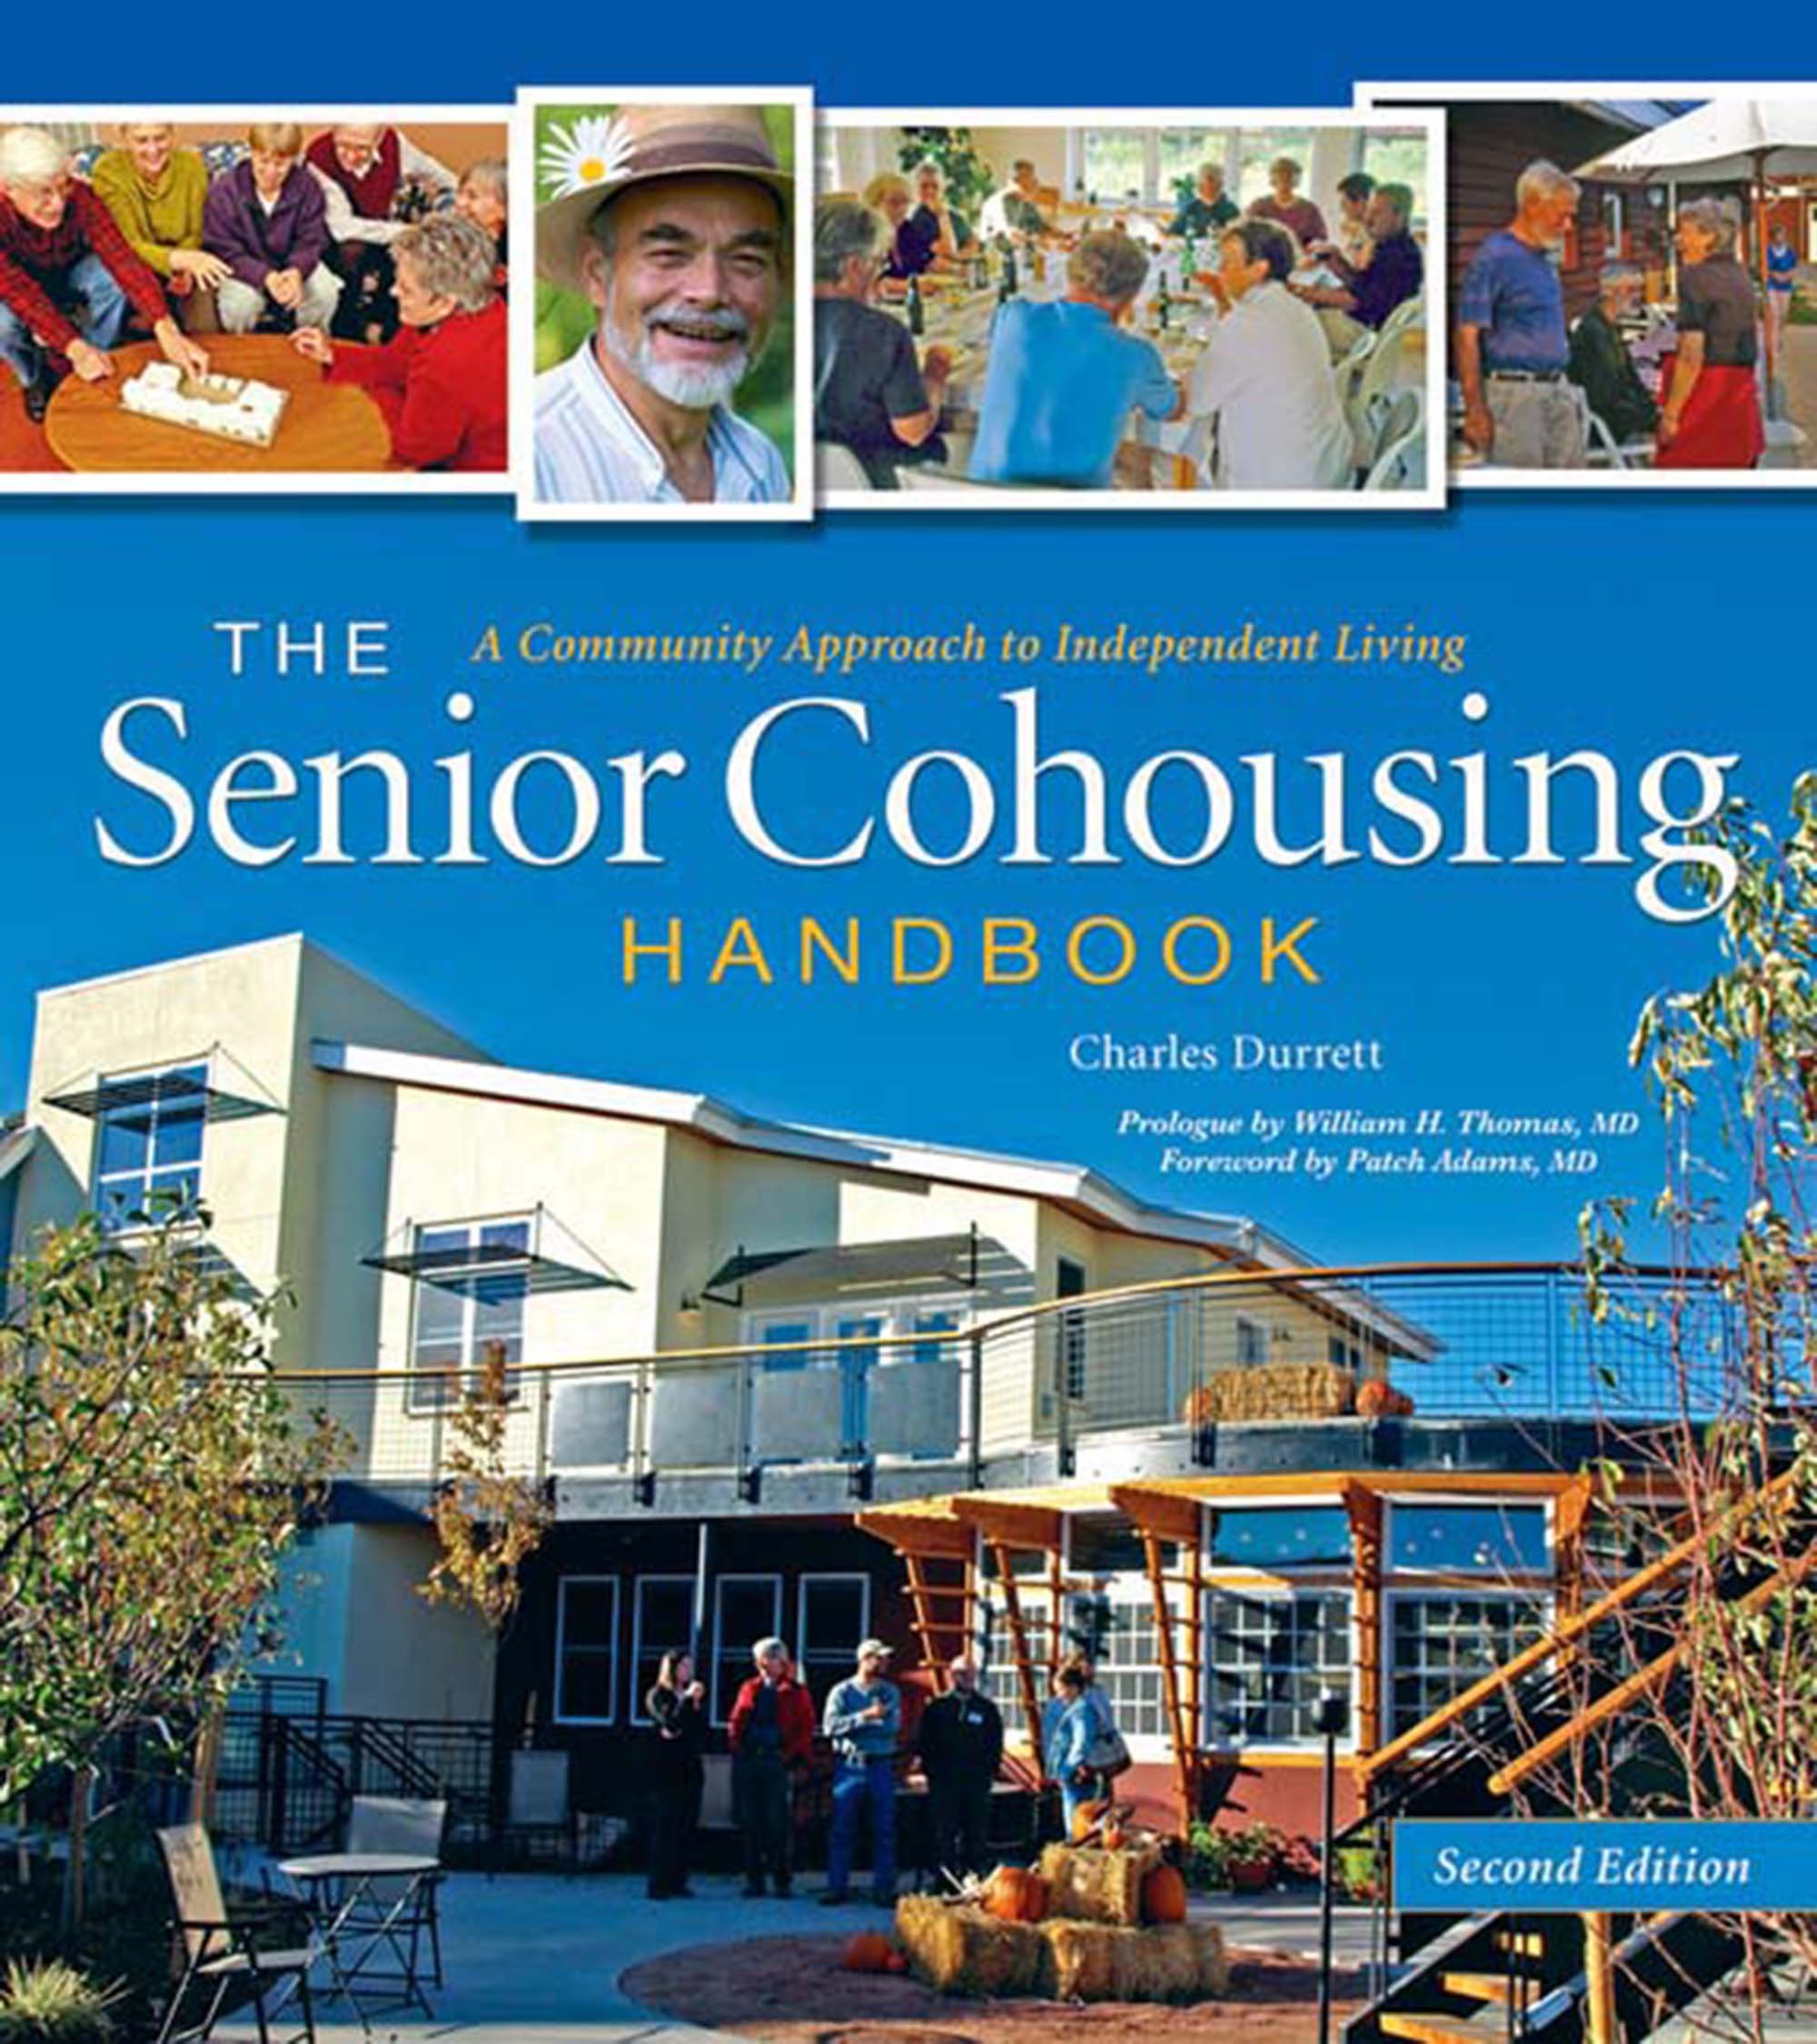 Image OfThe Senior Cohousing Handbook-2nd Edition: A Community Approach To Independent Living (English Edition)